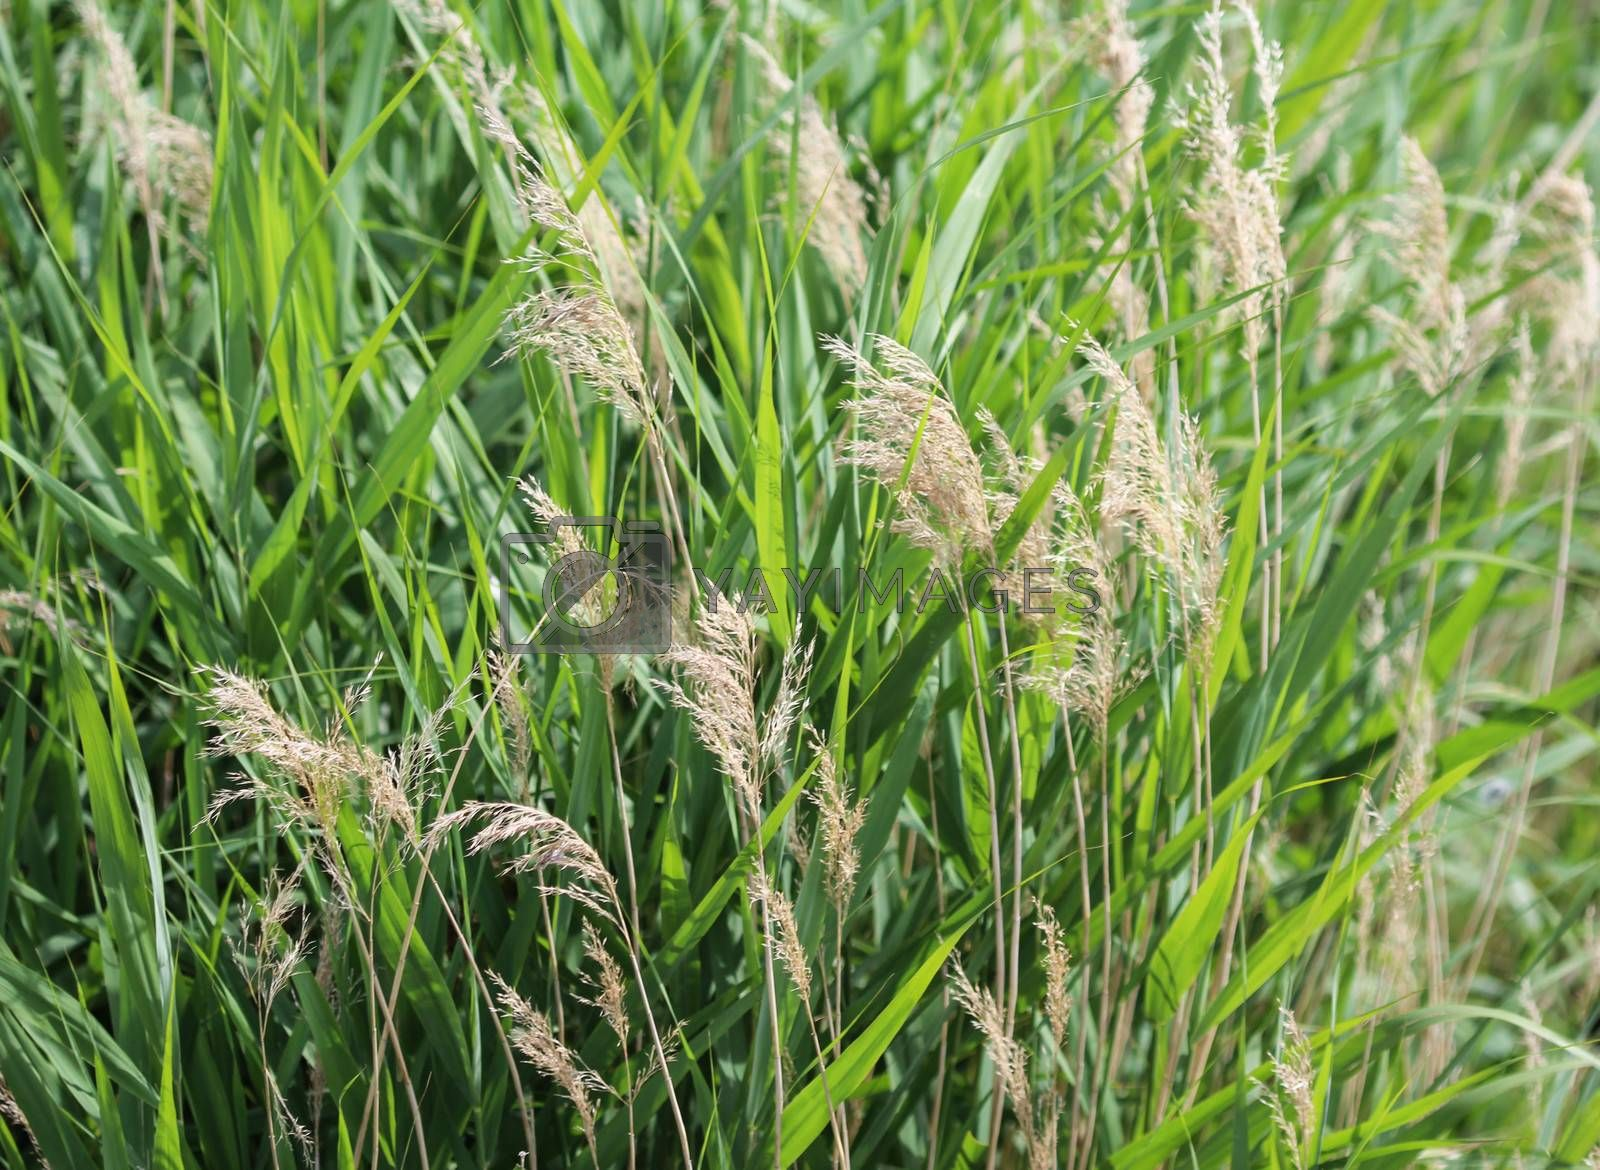 Royalty free image of common reed or Phragmites australis along a ditch by michaelmeijer